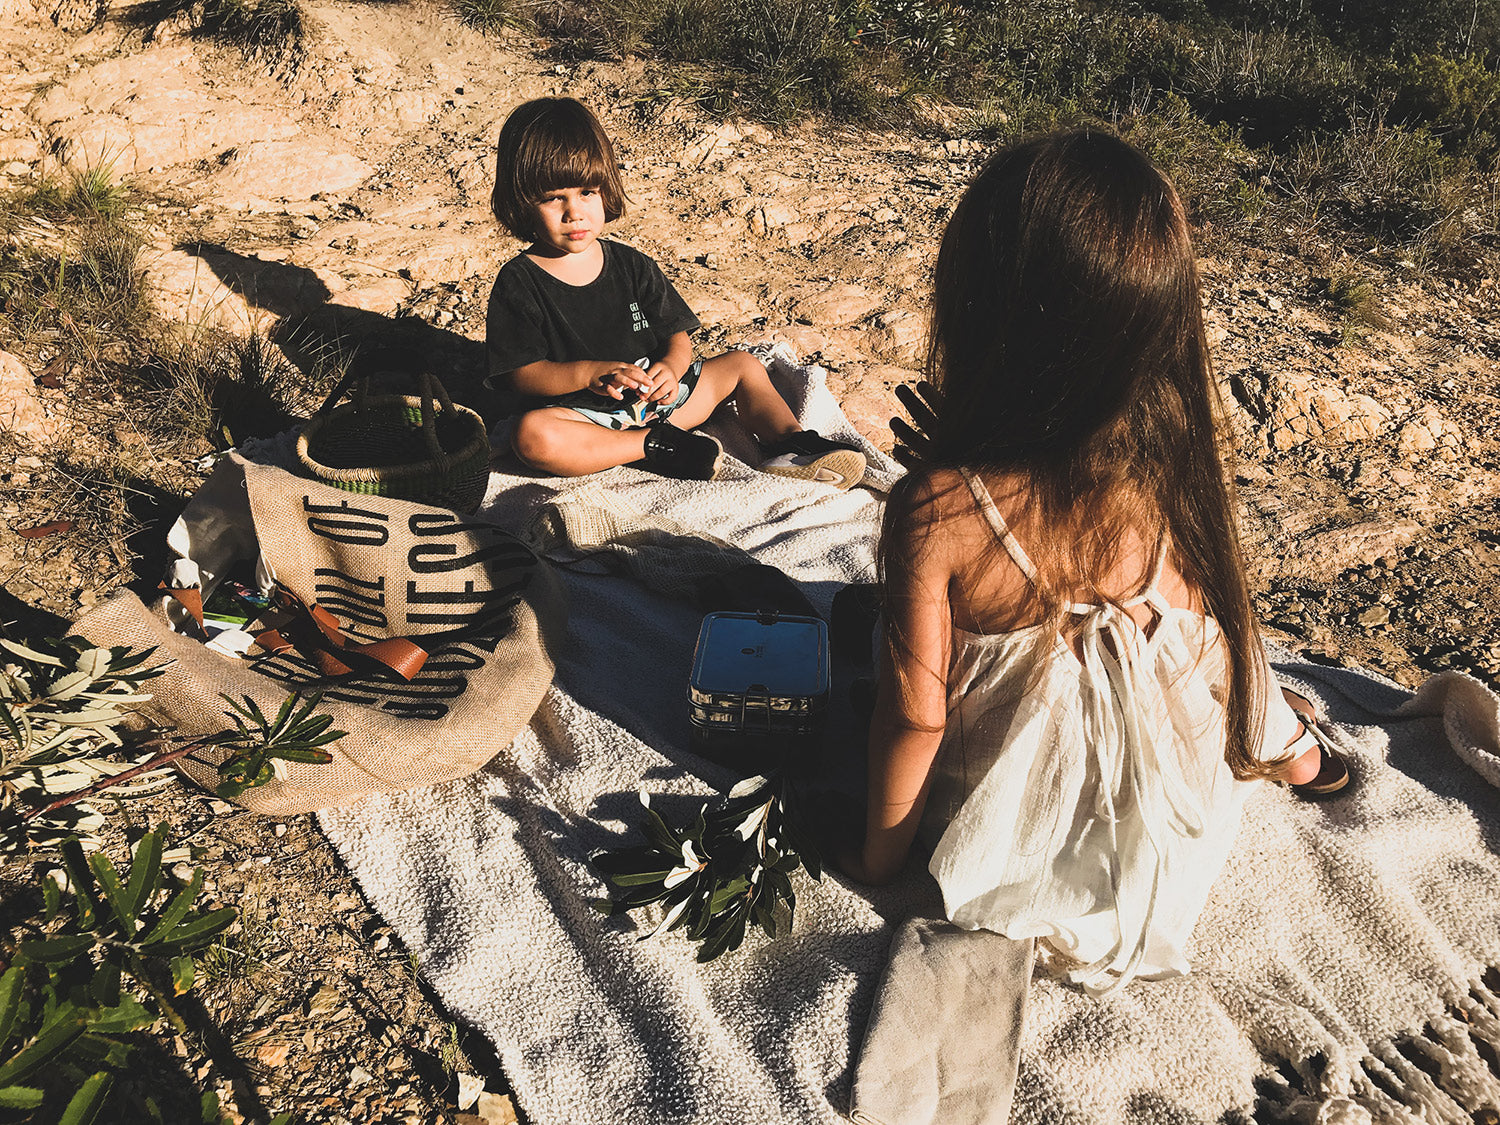 A picnic without waste